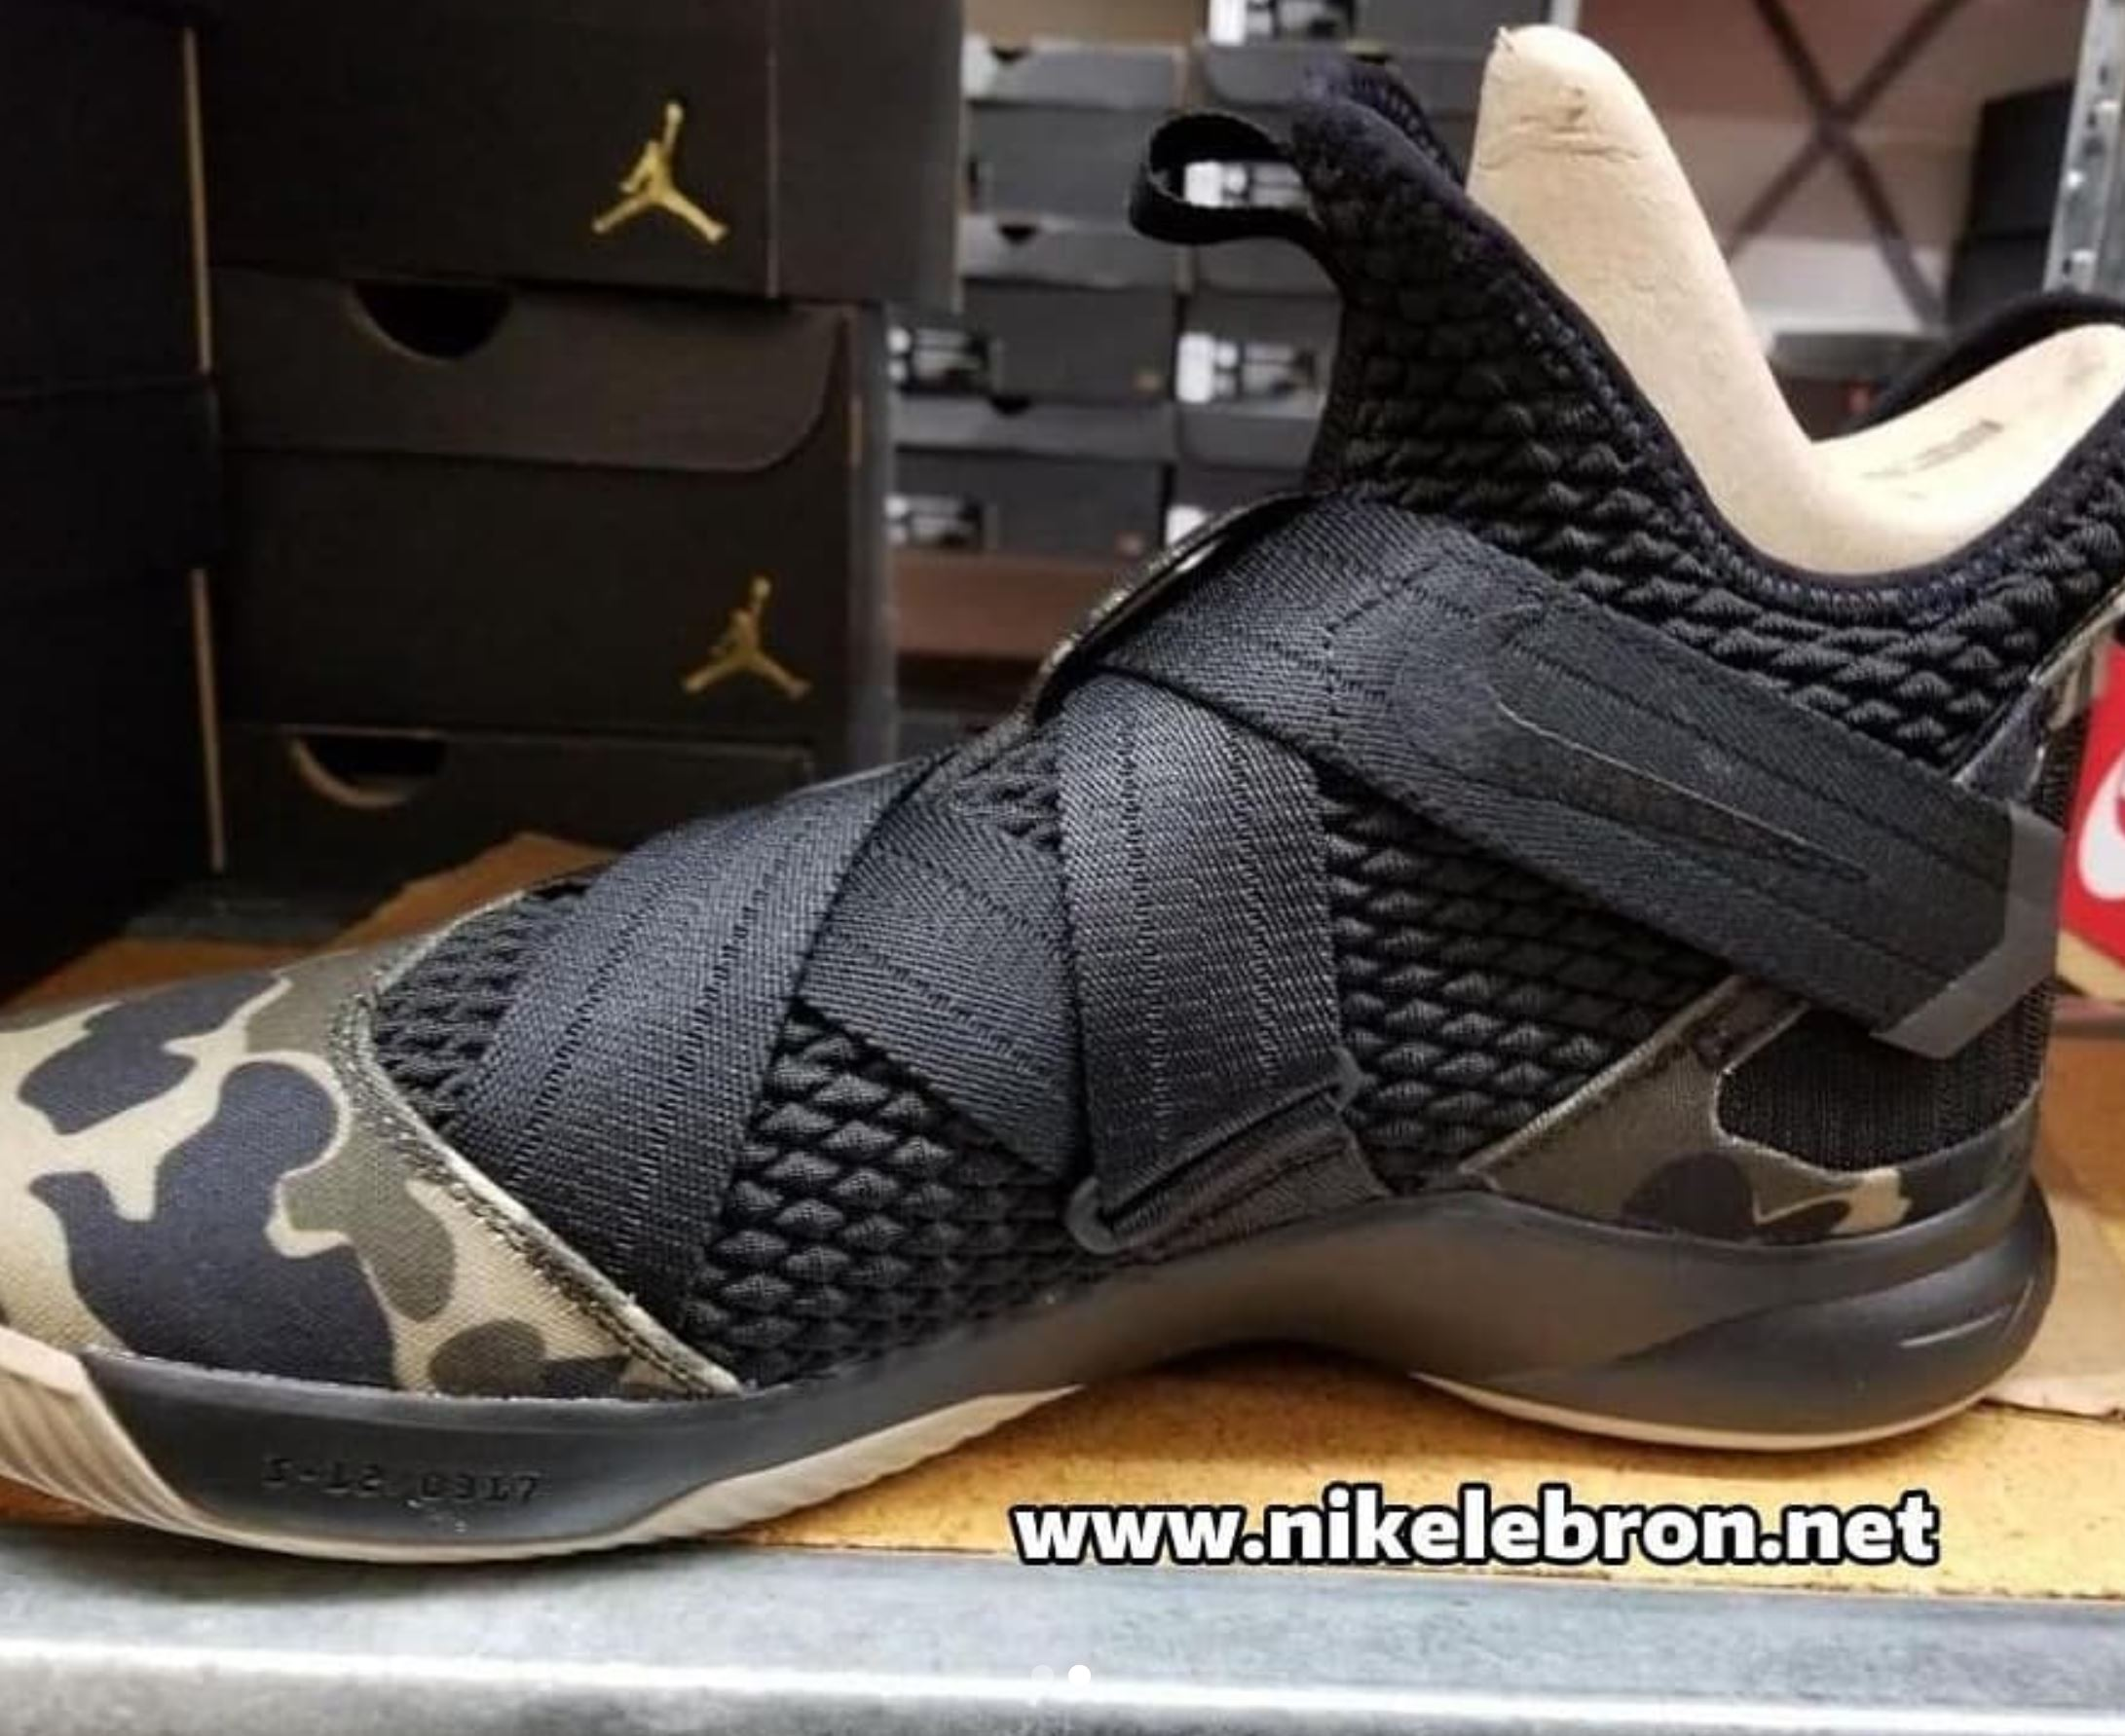 best loved f8df2 0f849 Here's LeBron's Next Sneaker, the LeBron Soldier 12 ...